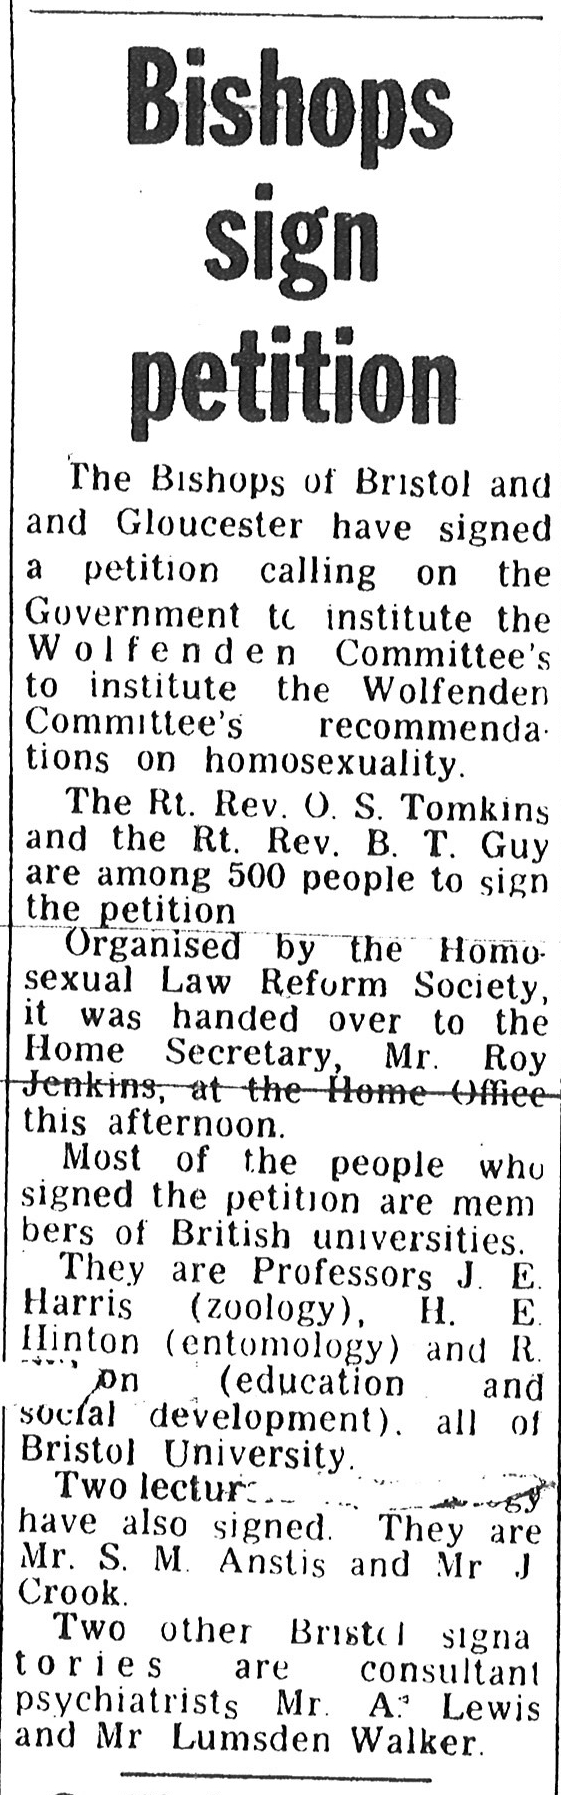 A newspaper extract about the Sexual Offences Bill of 1966.